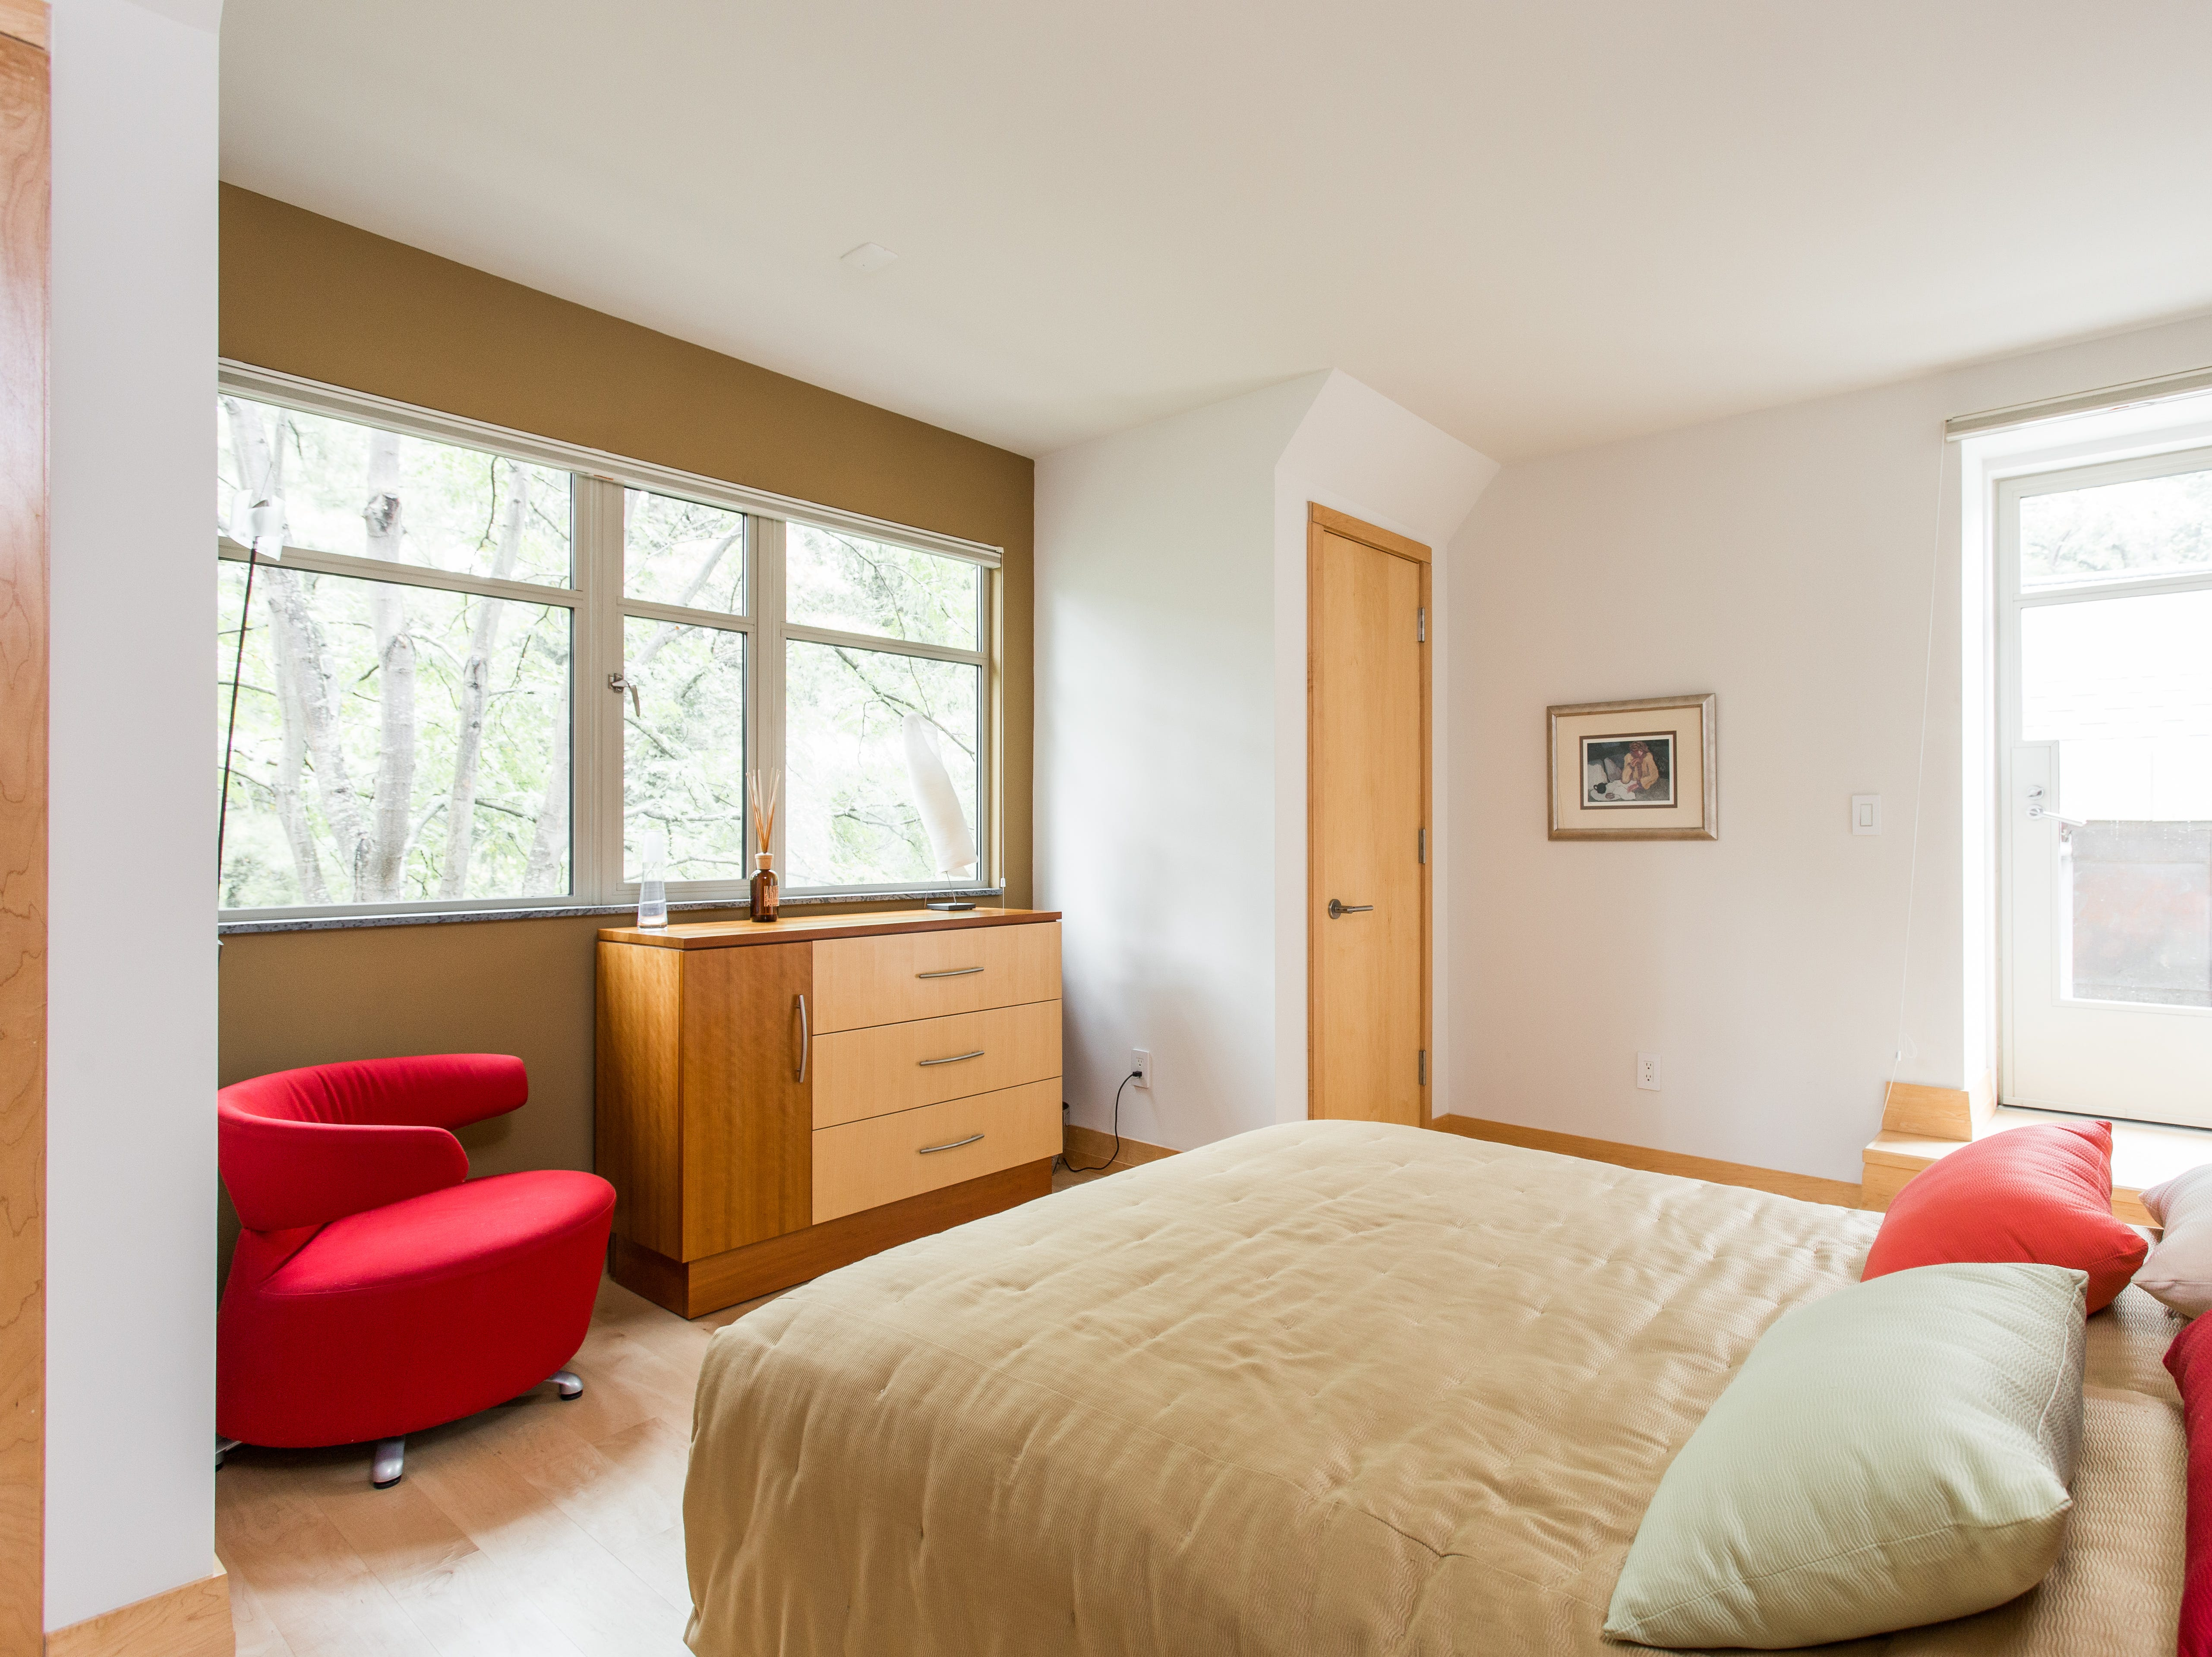 A guest room features a small balcony.